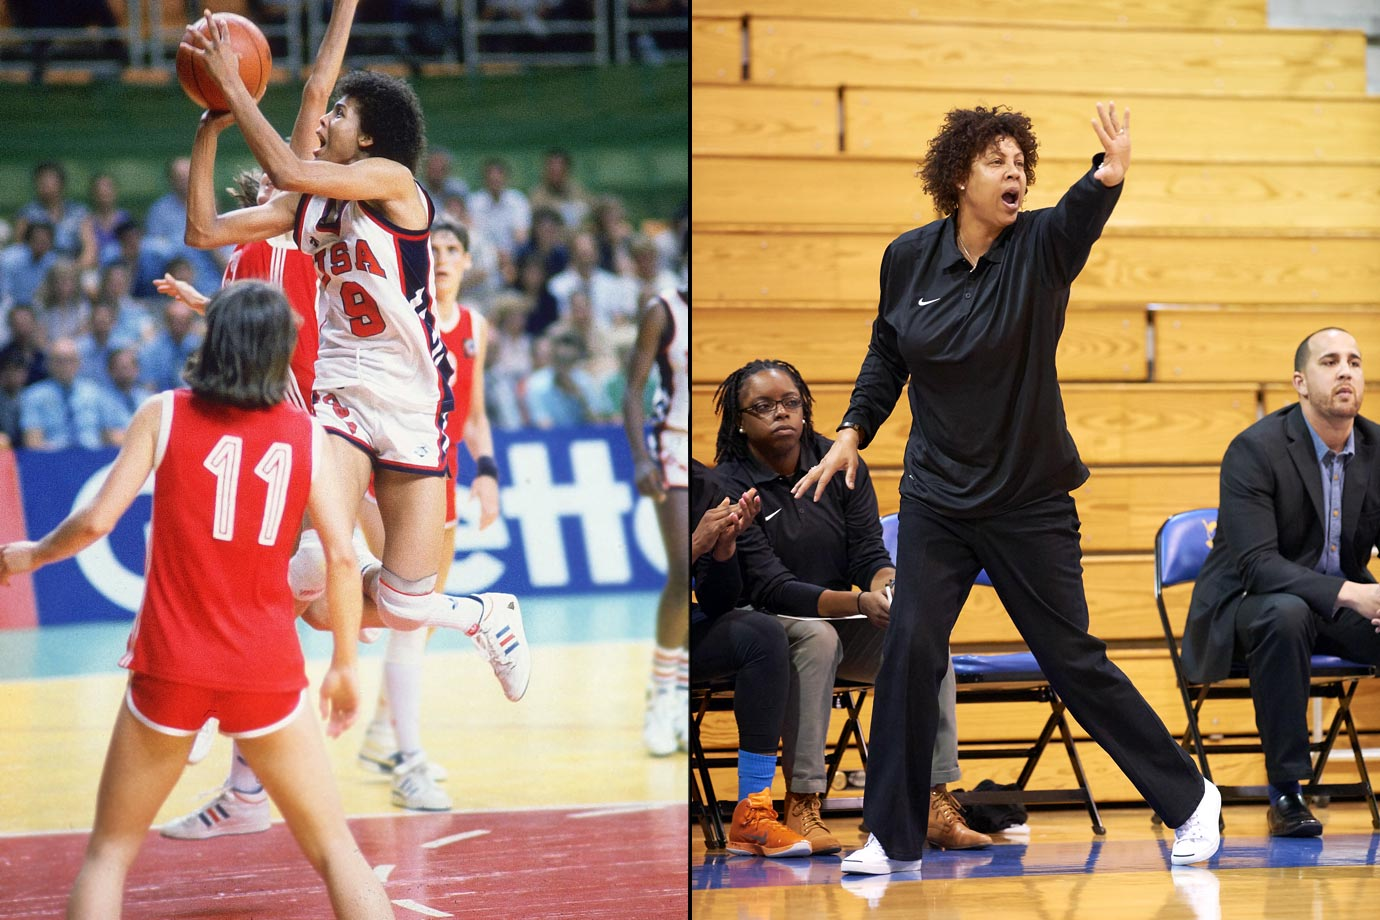 The greatest women's basketball player left her TV gig to get back into coaching, even after twice burning out on the bench. She took her best offer, at an NAIA school, where she has turned around the program—and rediscovered herself. Miller took a touch-love approach to team building when she arrived in Langston, and her players—eventually—embraced her methods.